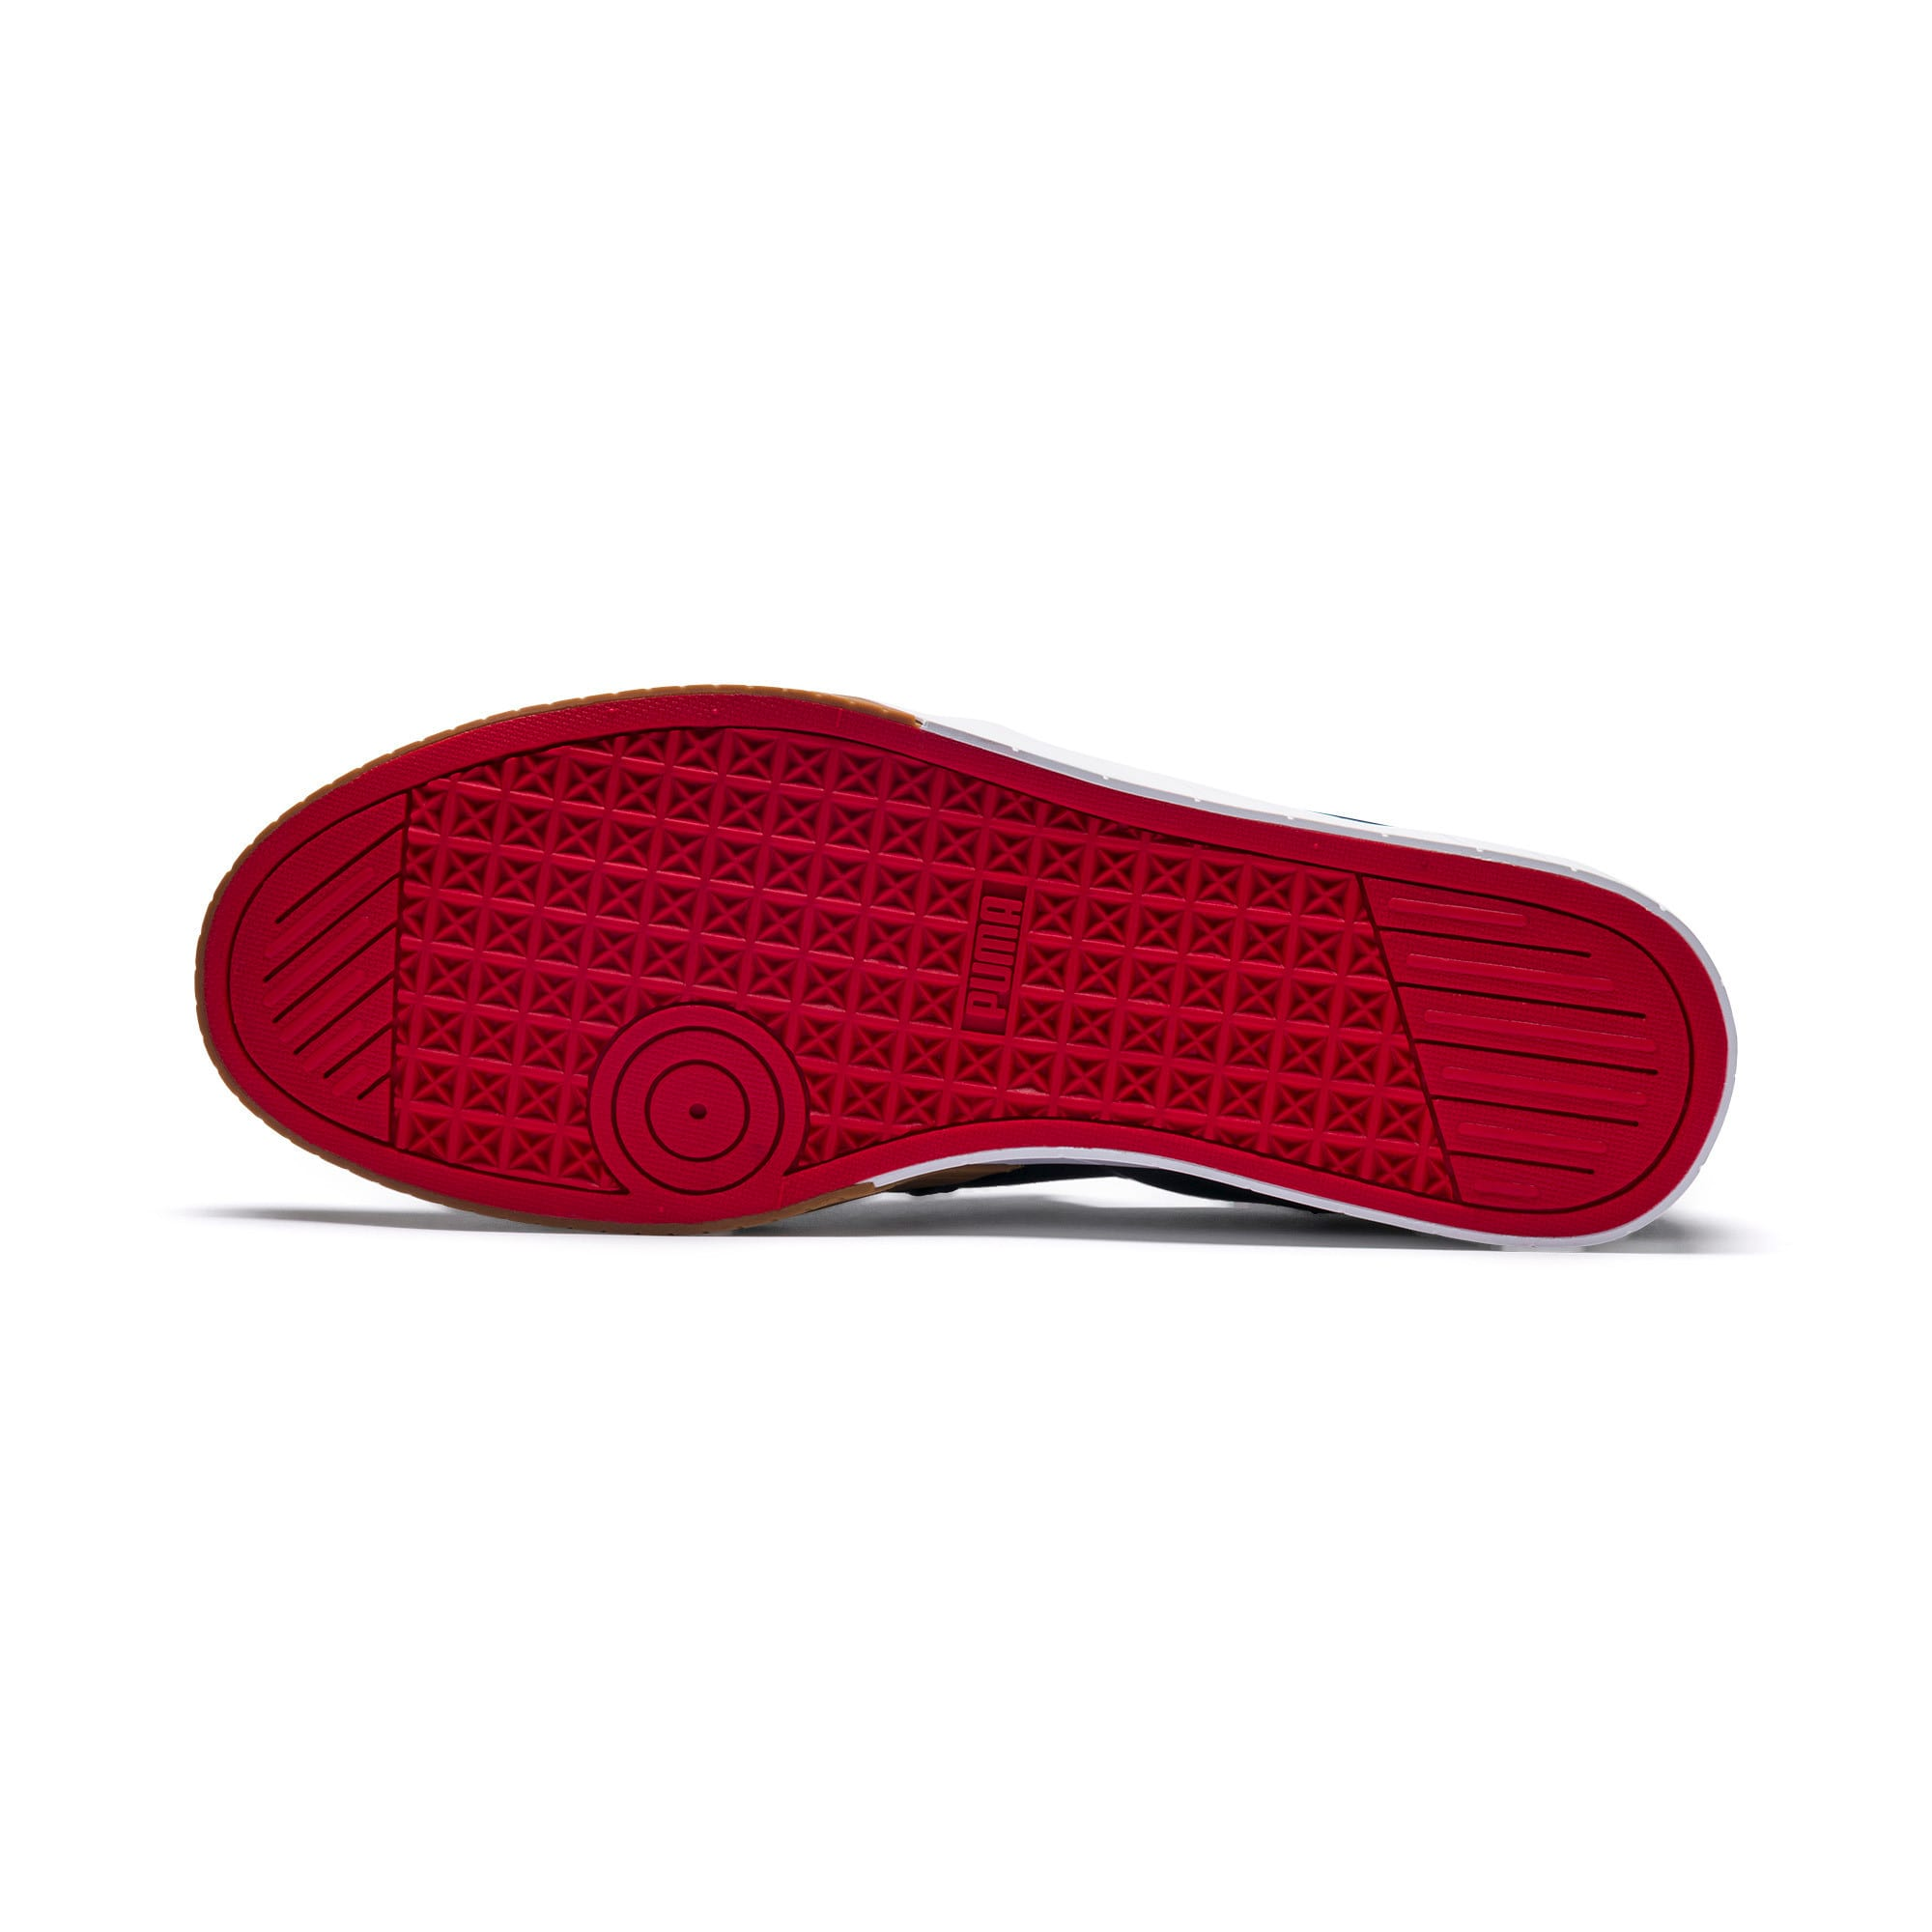 Thumbnail 2 of Scuderia Ferrari Men's Slip-On Track Shoes, Peacoat-Peacoat, medium